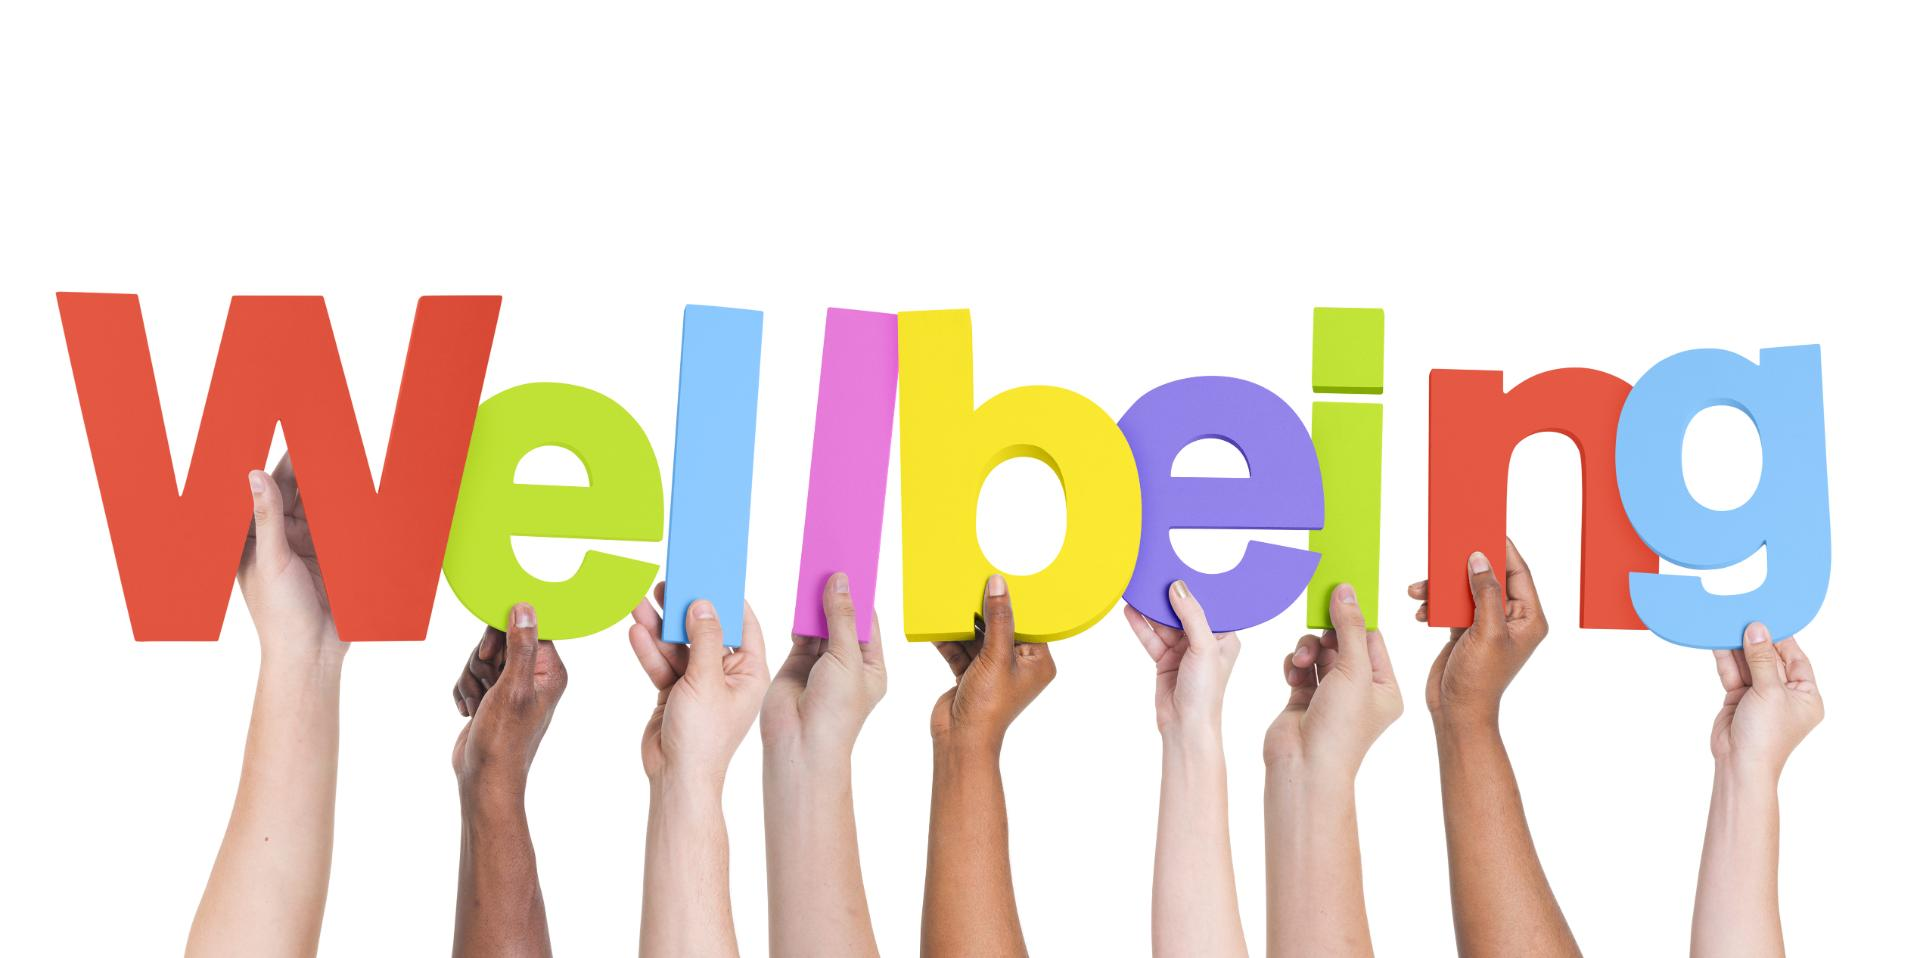 Wellbeing_image_ST